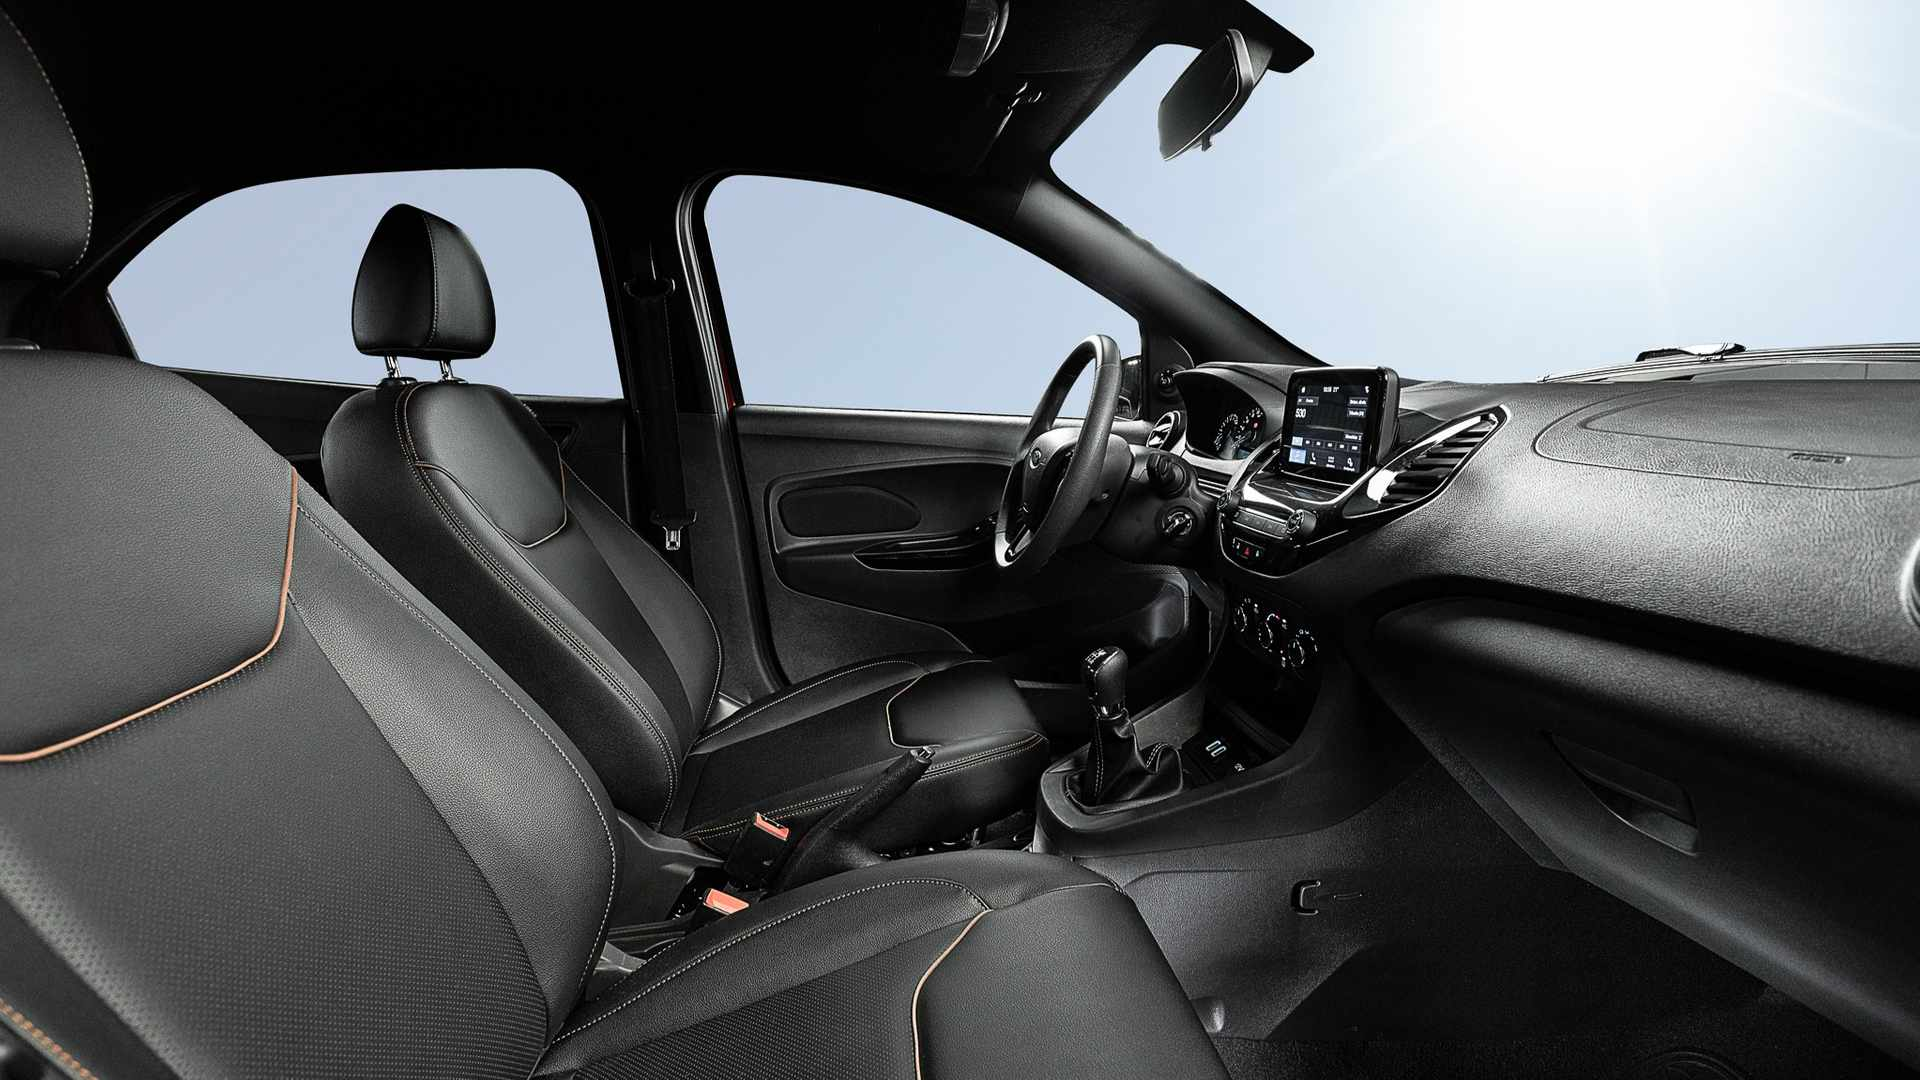 Ford-Ka-Urban-Warrior-Sedan-Interior_2